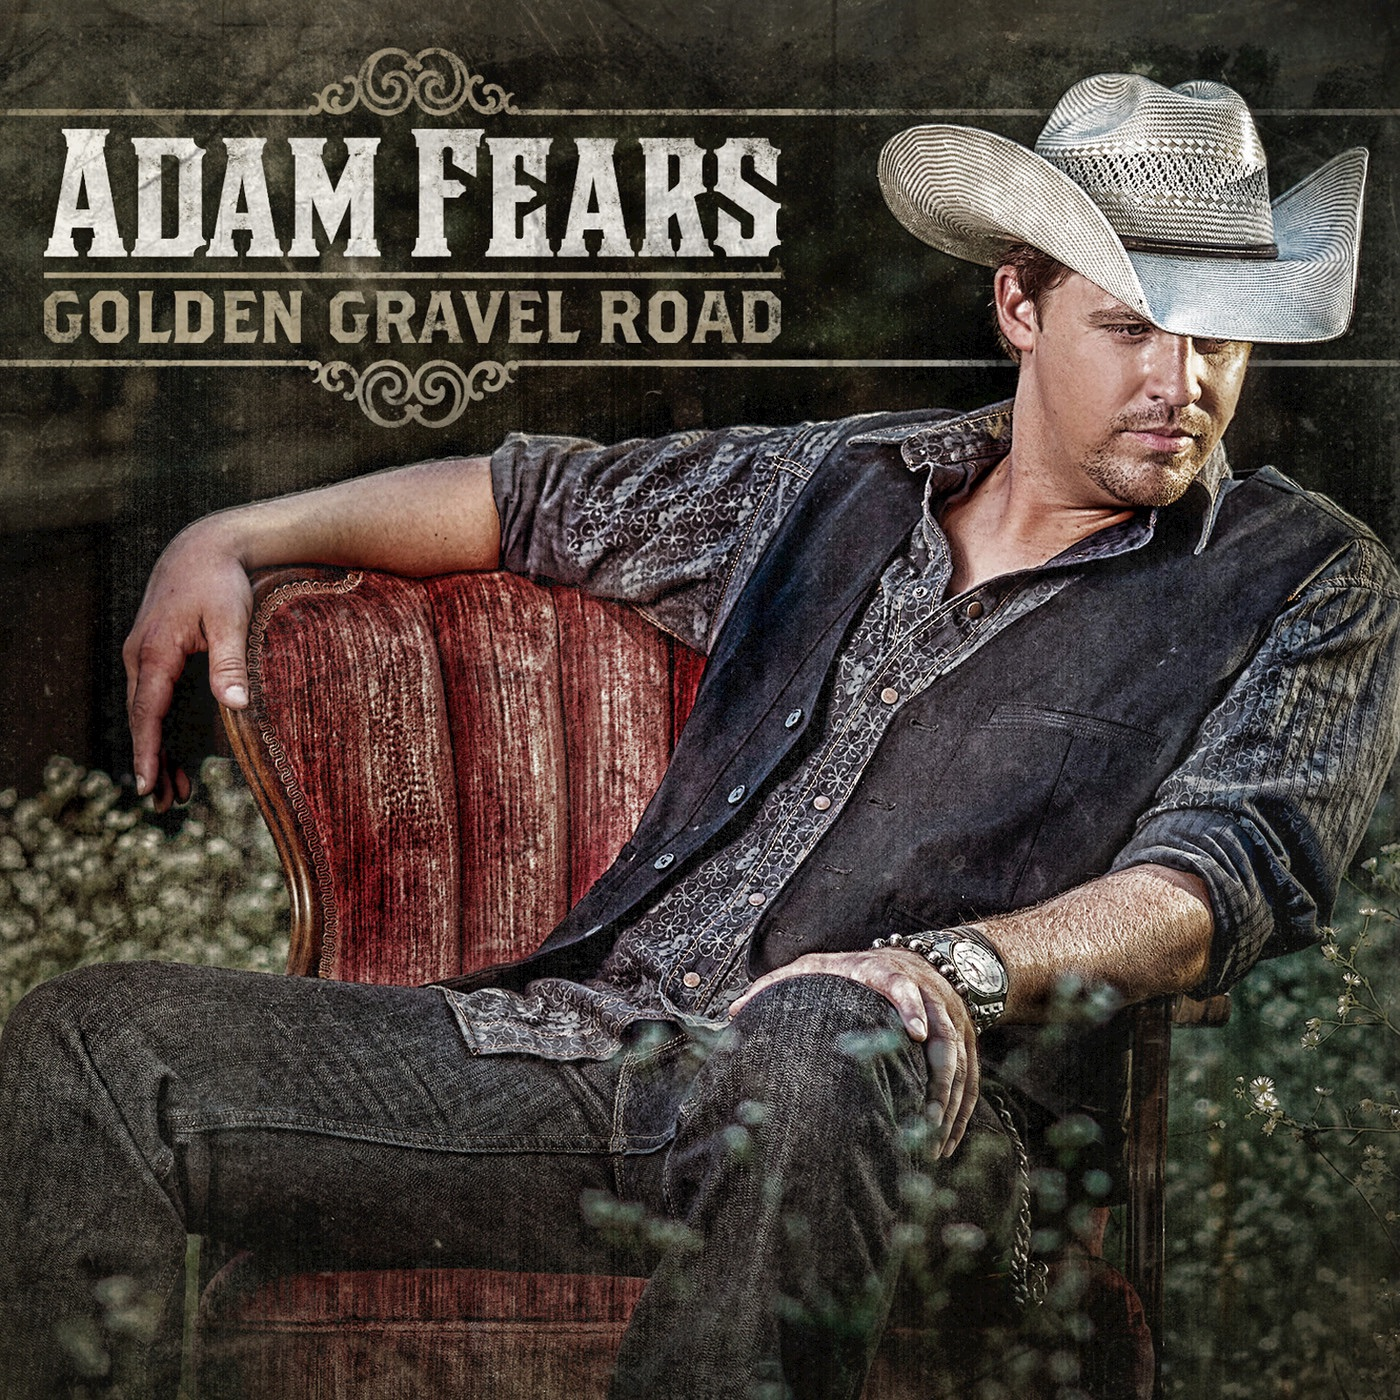 Golden Gravel Road